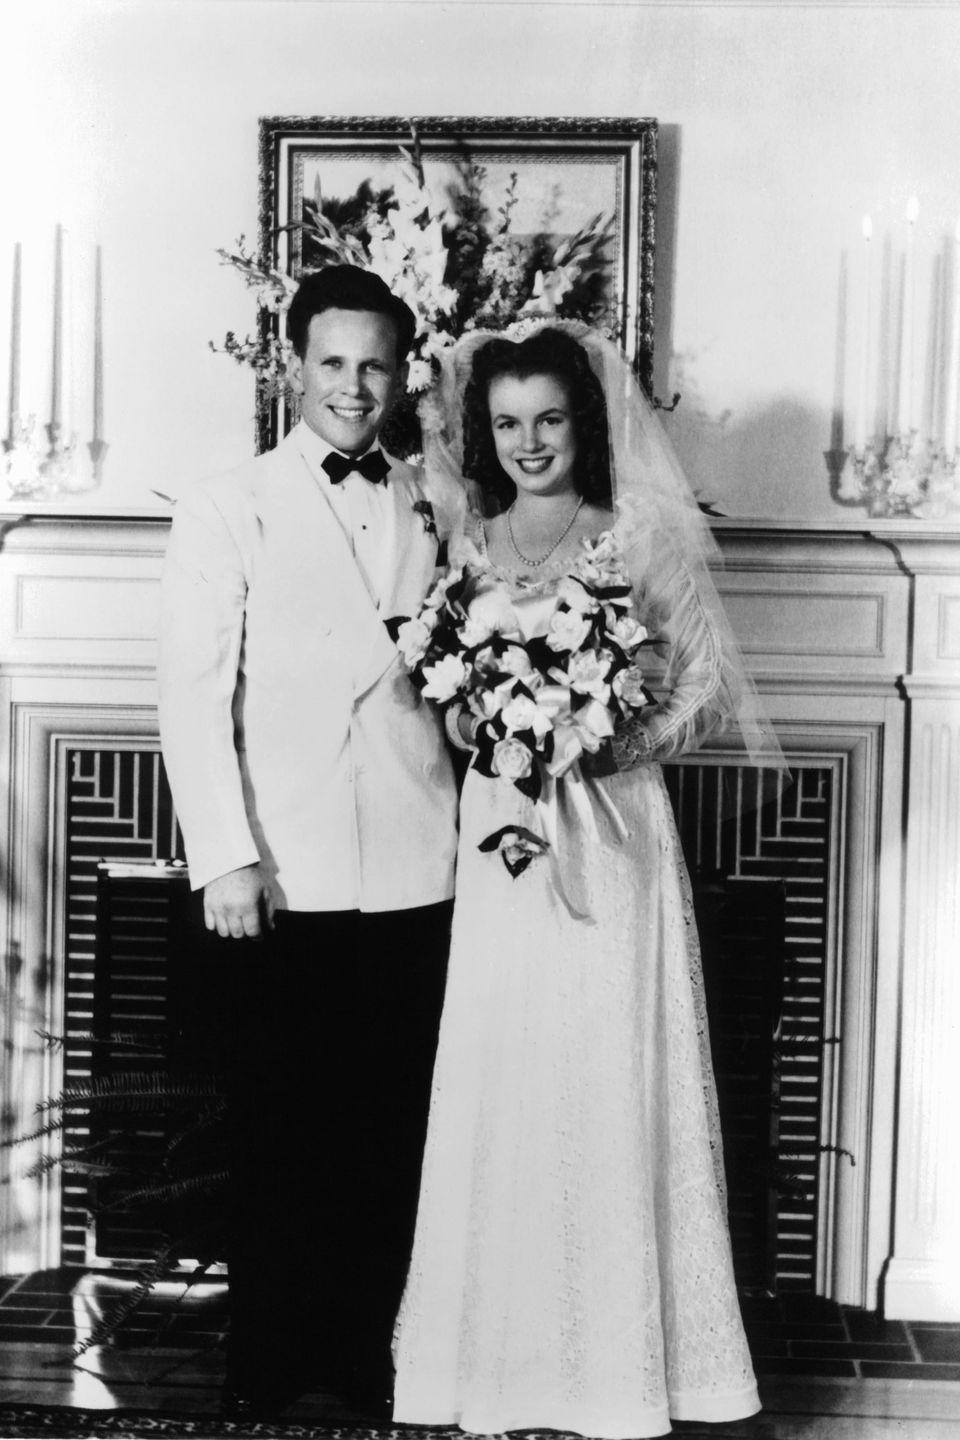 <p>She married her 21-year-old neighbor James Dougherty at 16 years old to avoid the possibility of her going back to an orphanage. </p>